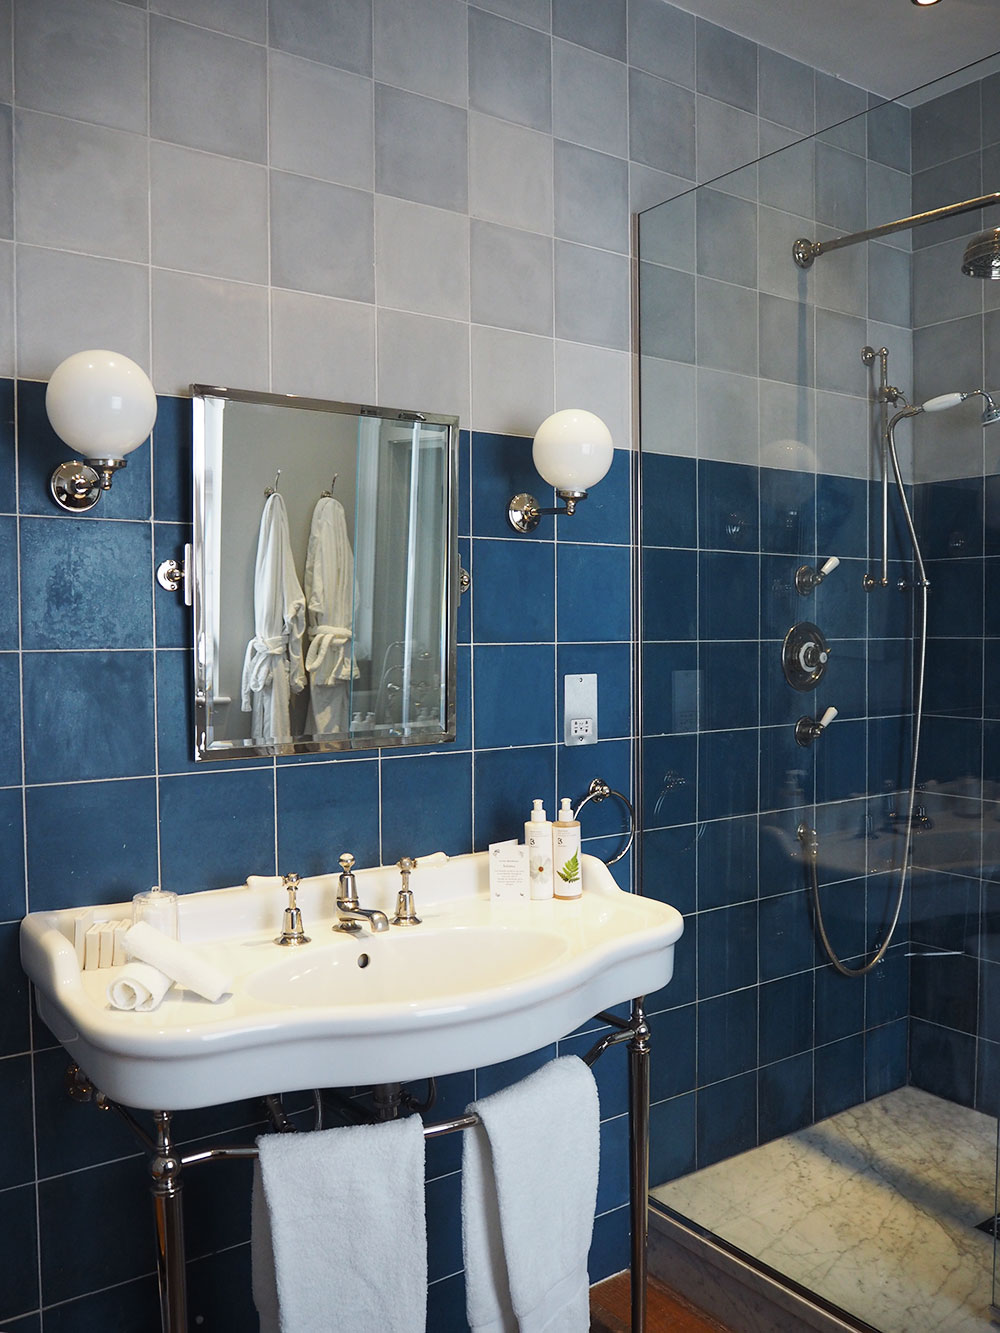 RosyCheeks-Hotel-Artist-Residence-London-bathroom